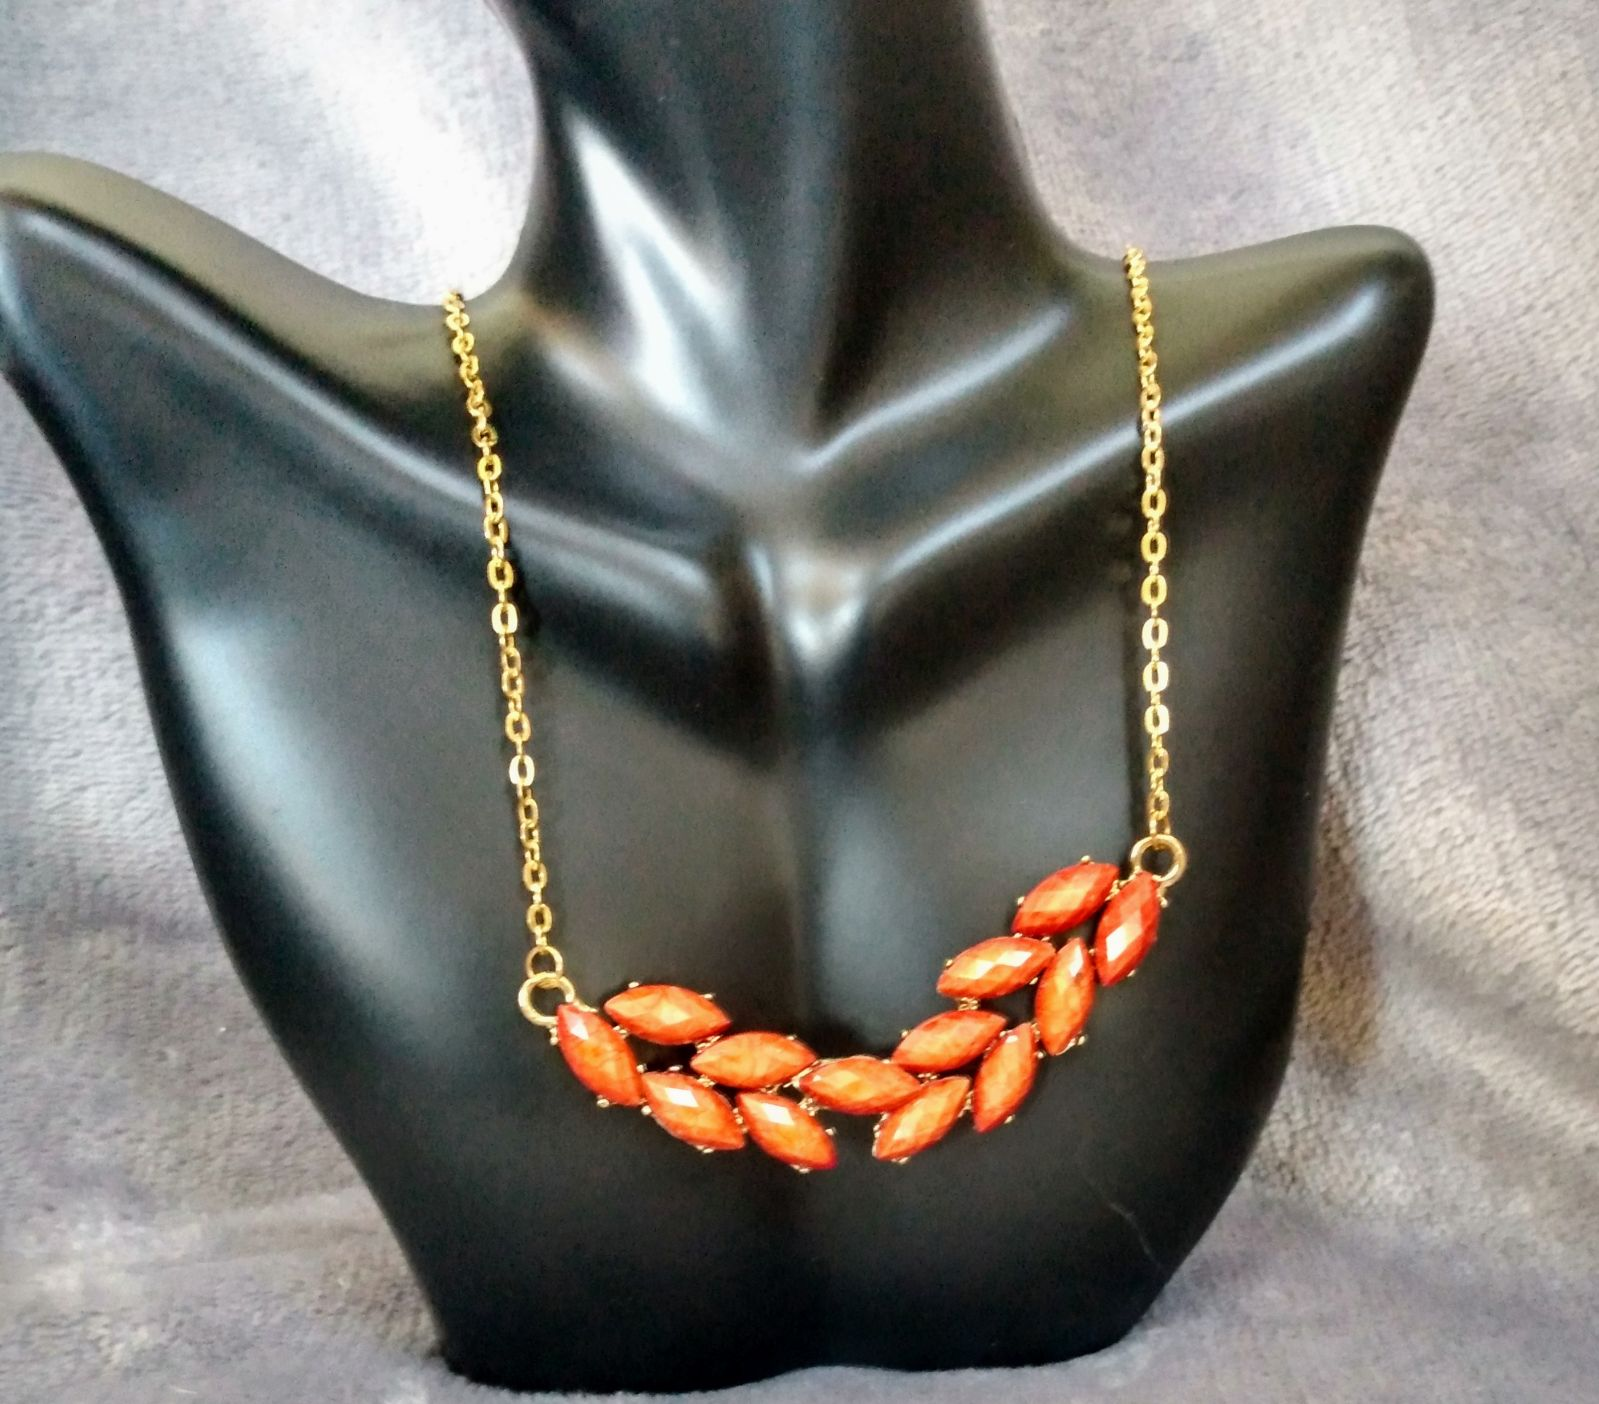 Beautiful Orange Seed Necklace with Gold